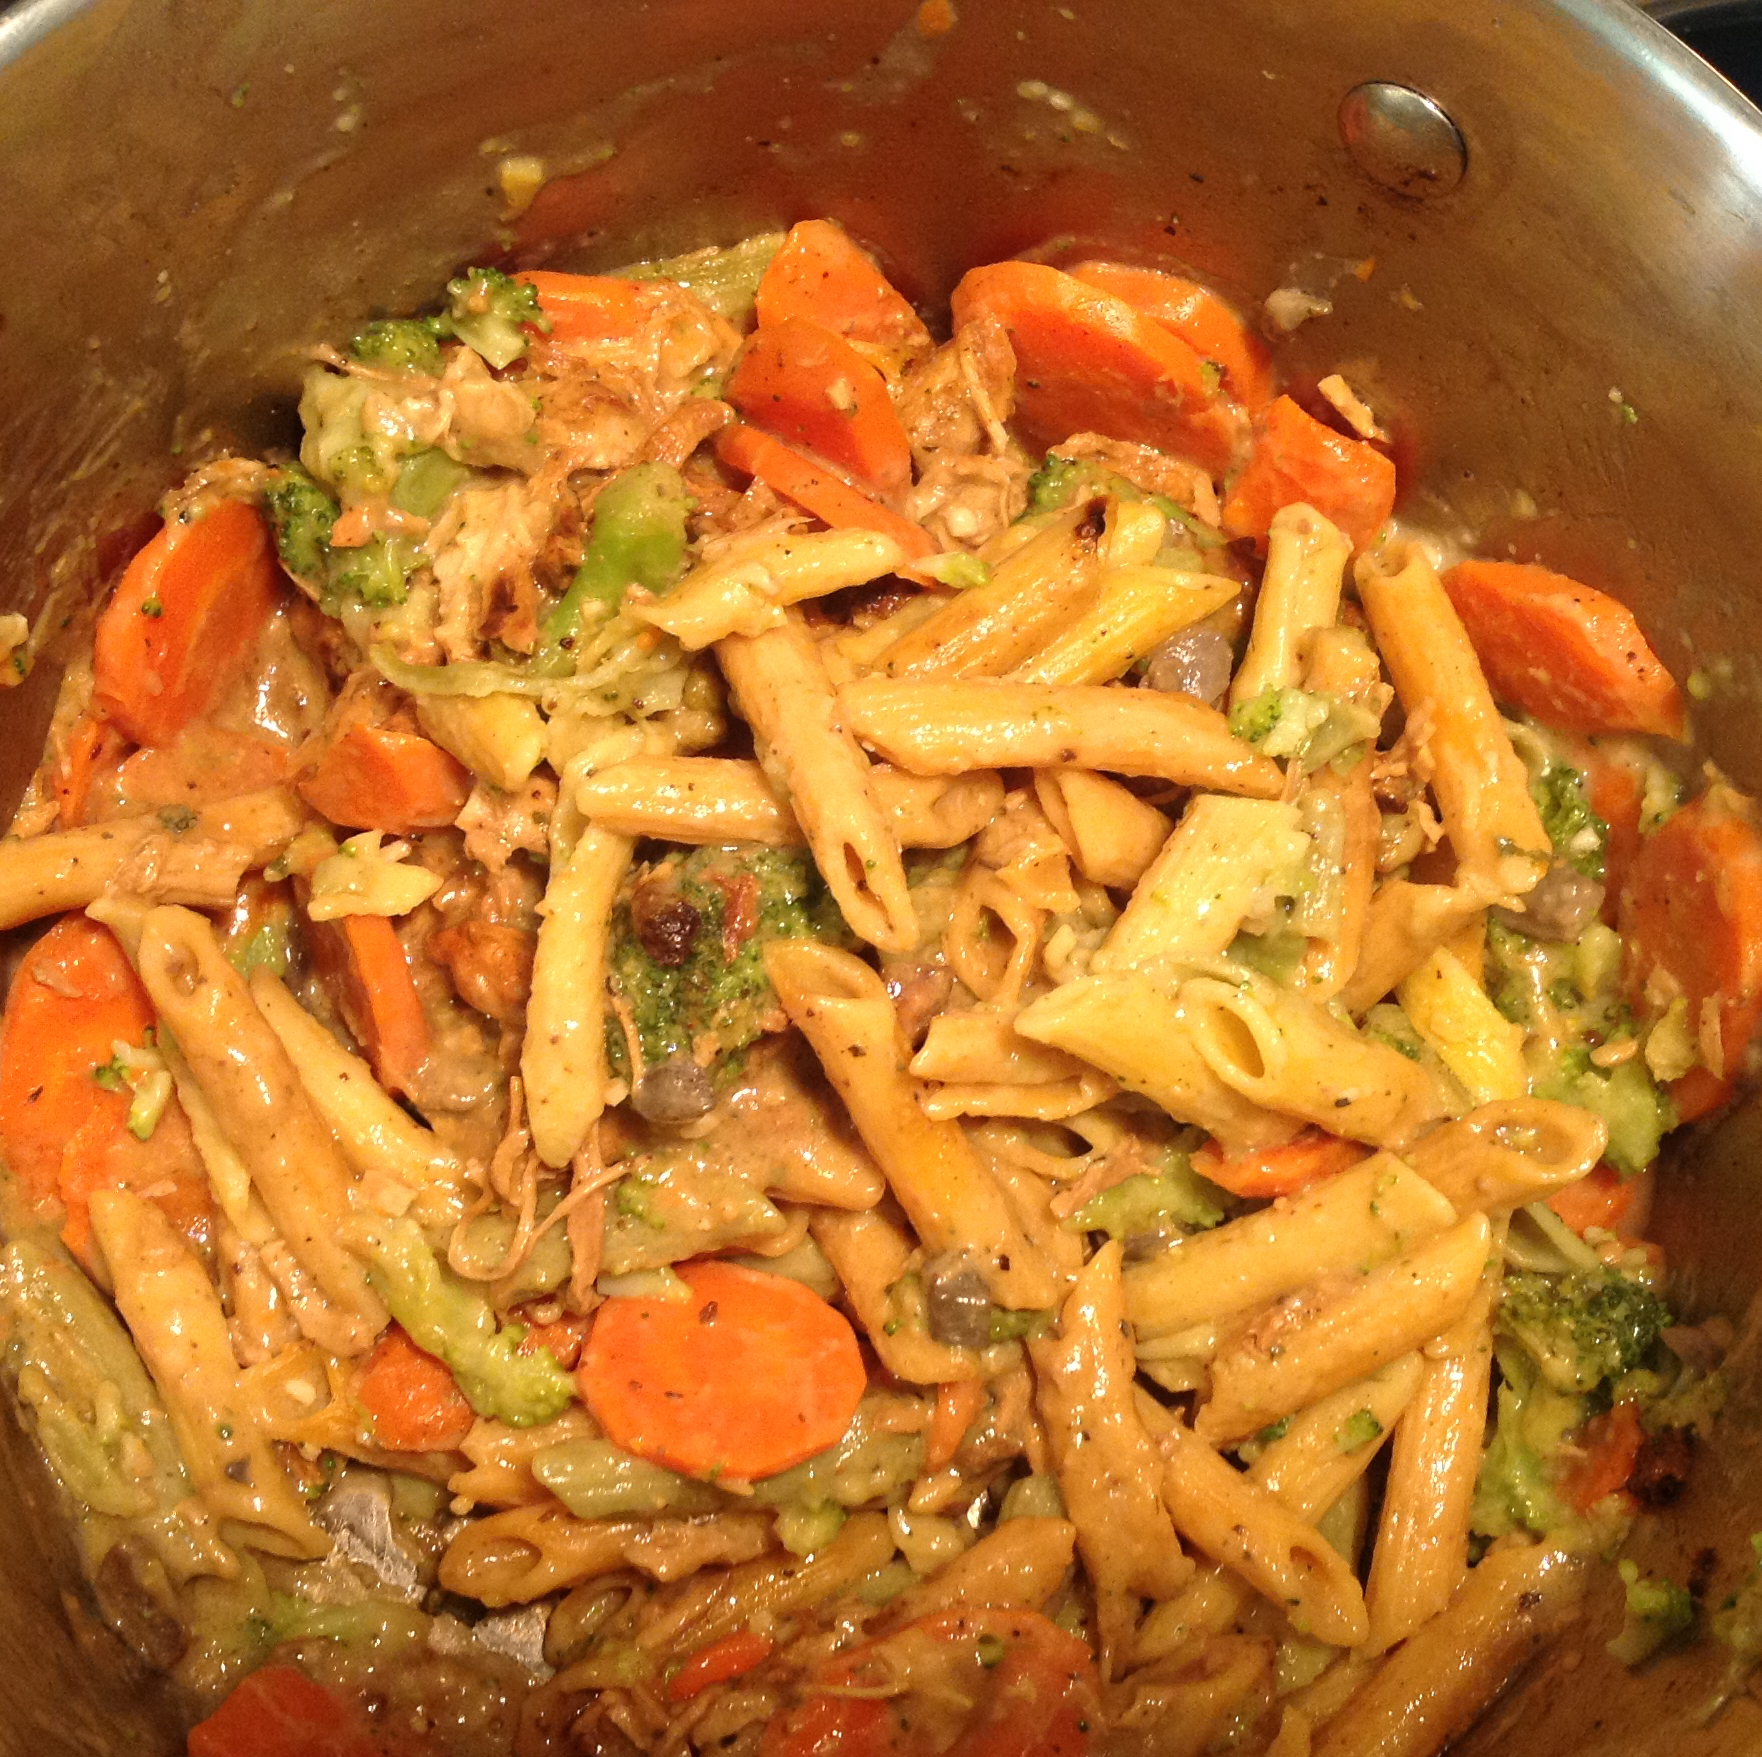 Chicken and Pasta Primavera